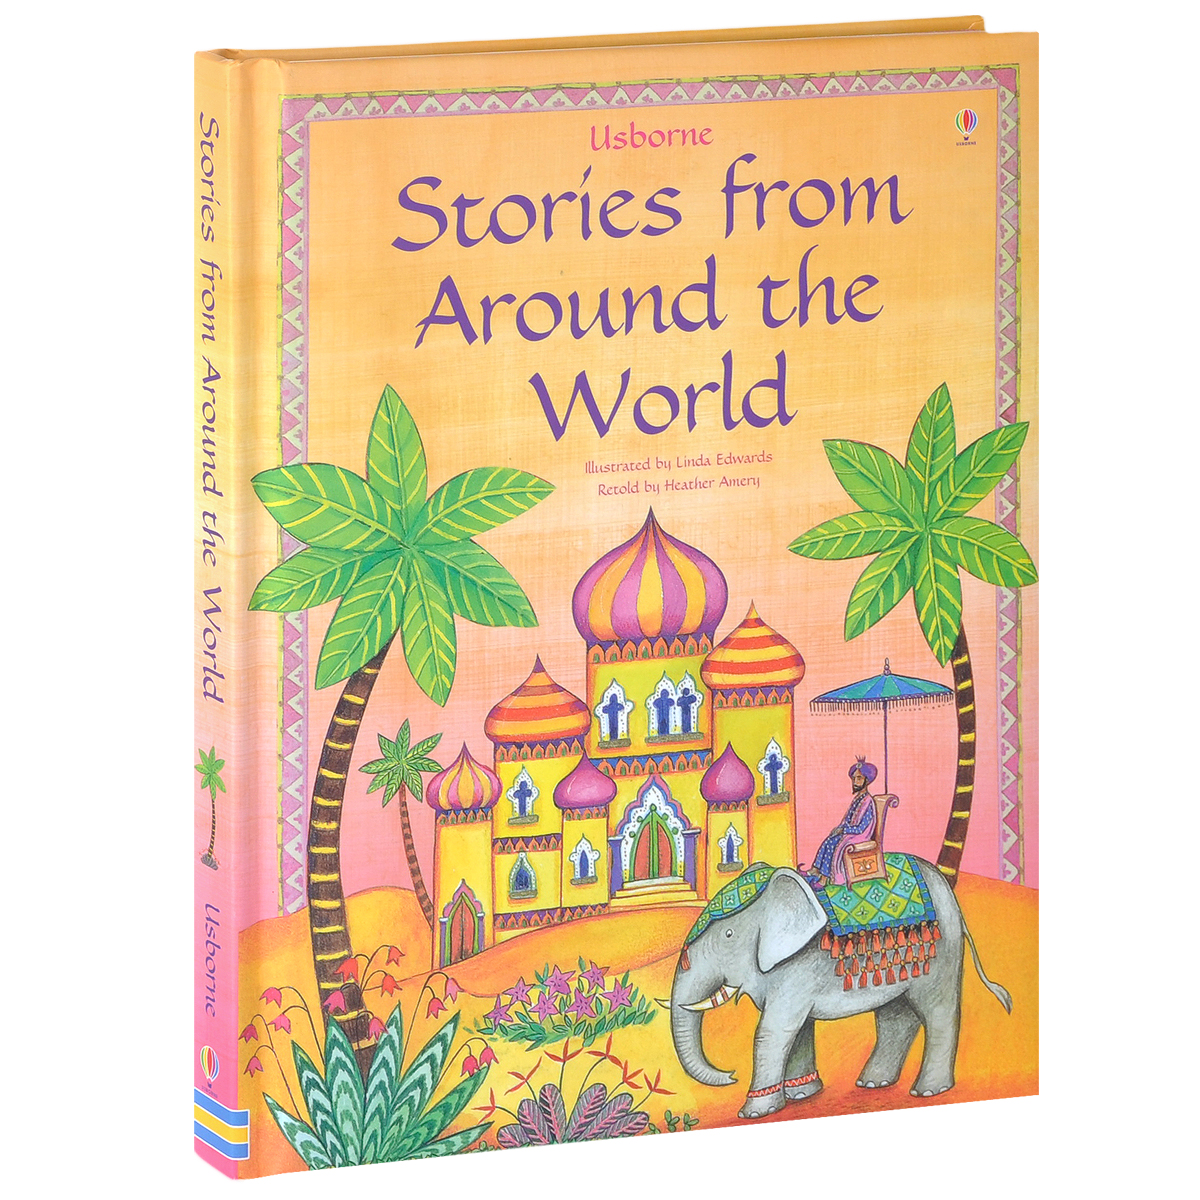 Stories from Around the World magical illustrated stories